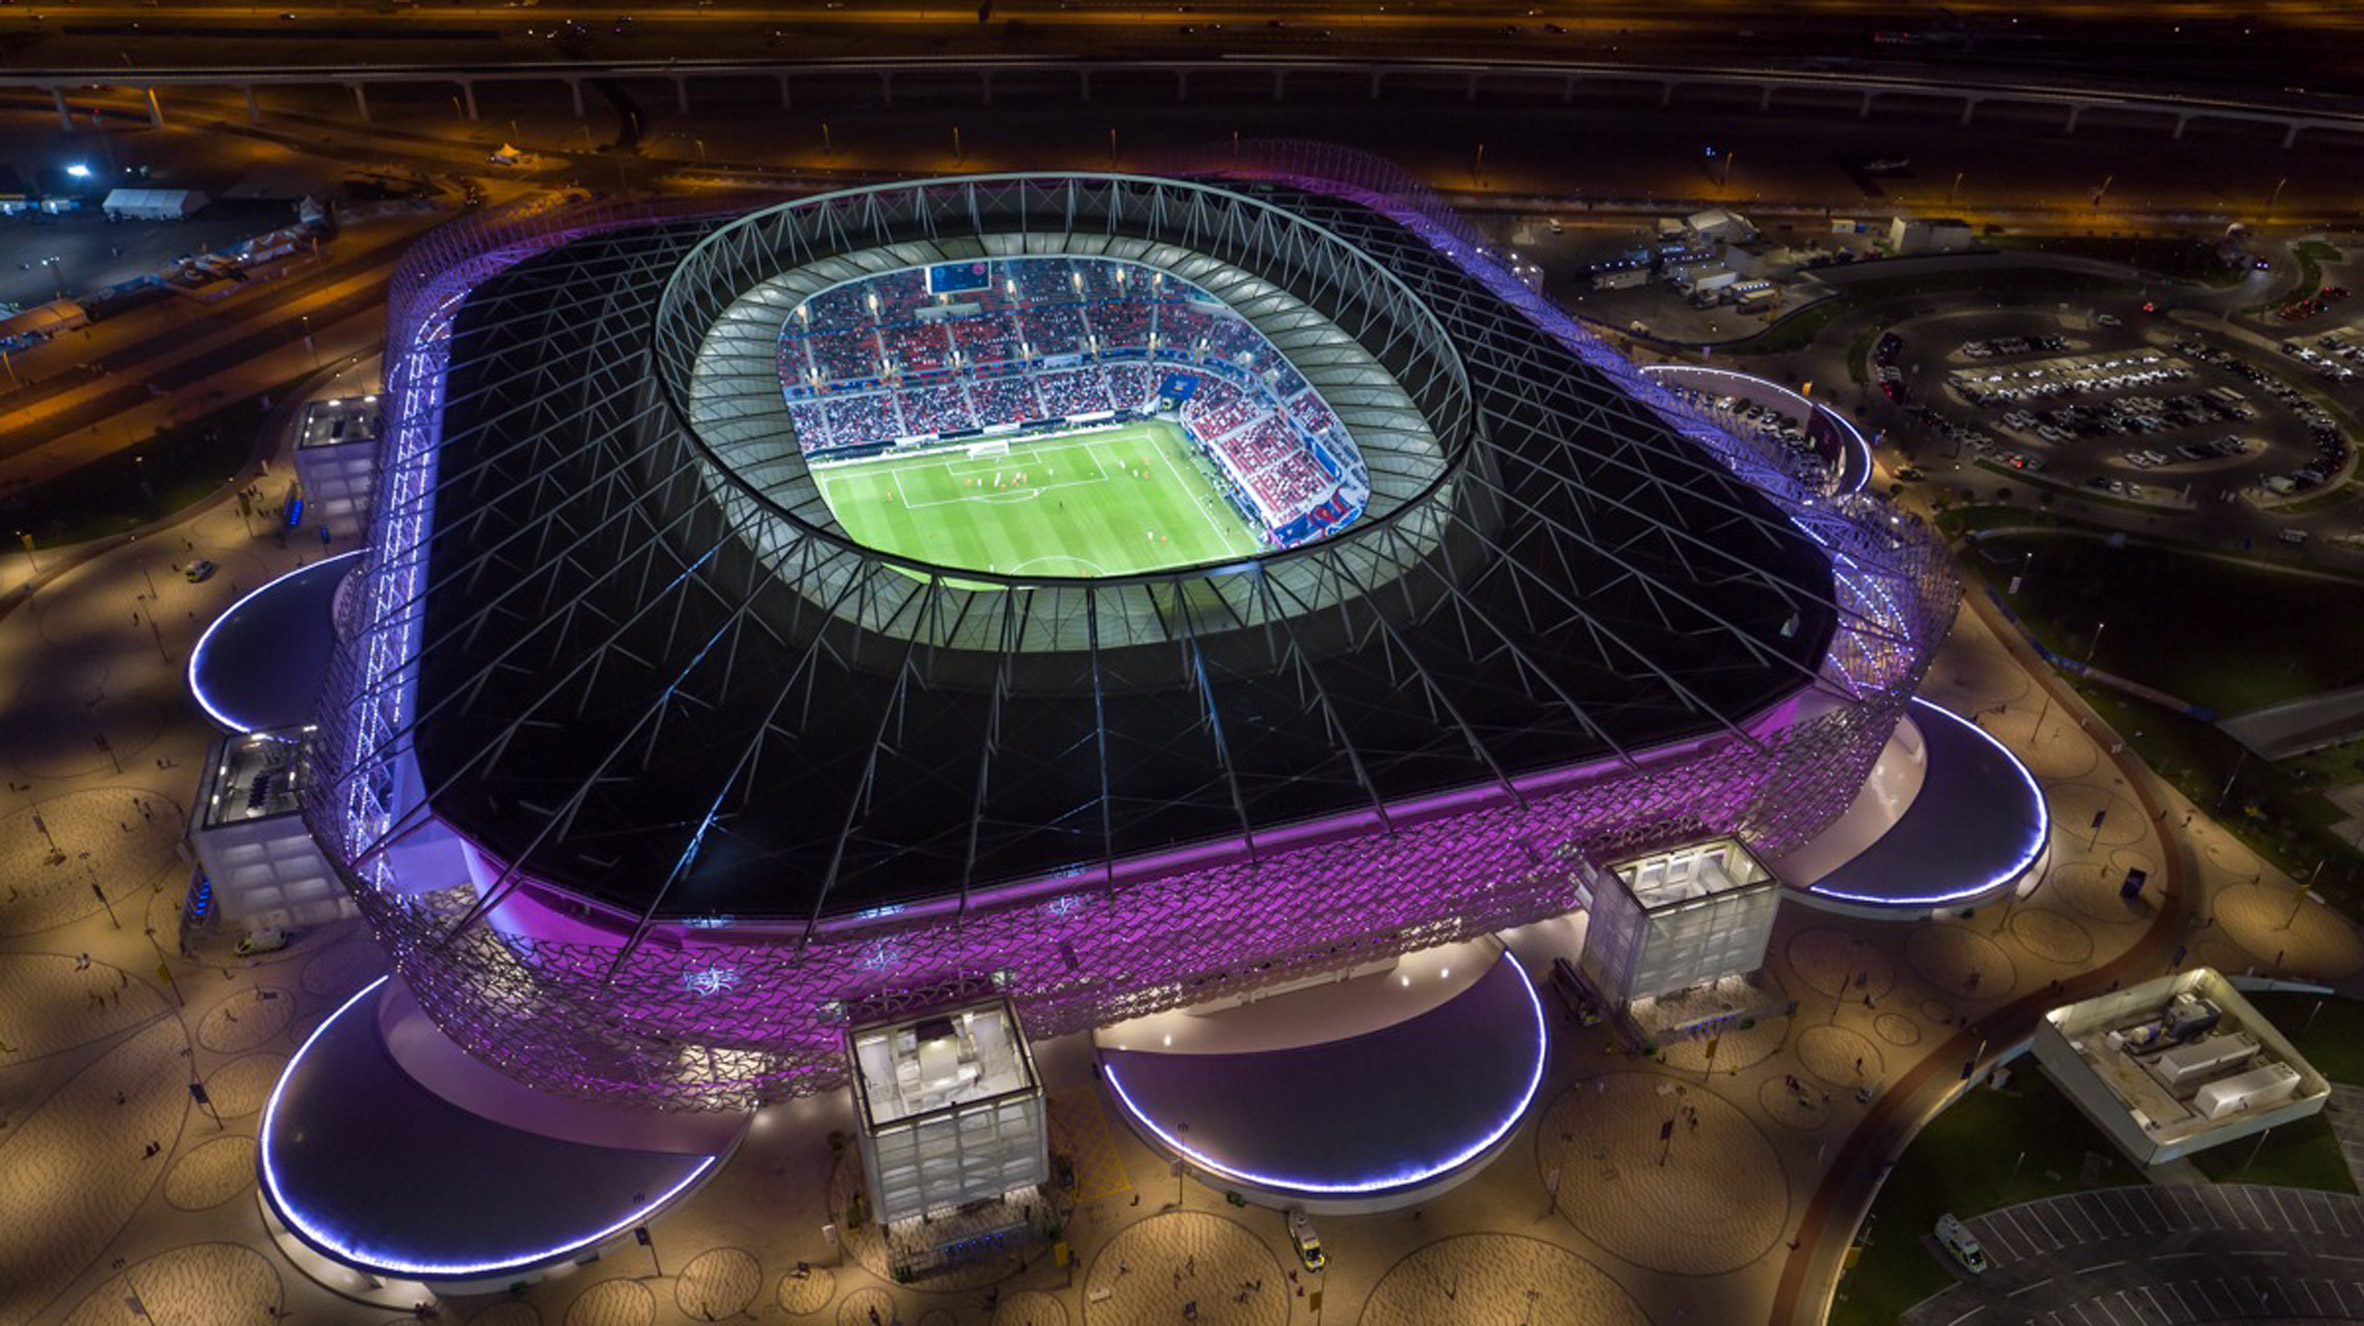 Ahmed Bin Ali Stadium for Qatar World Cup